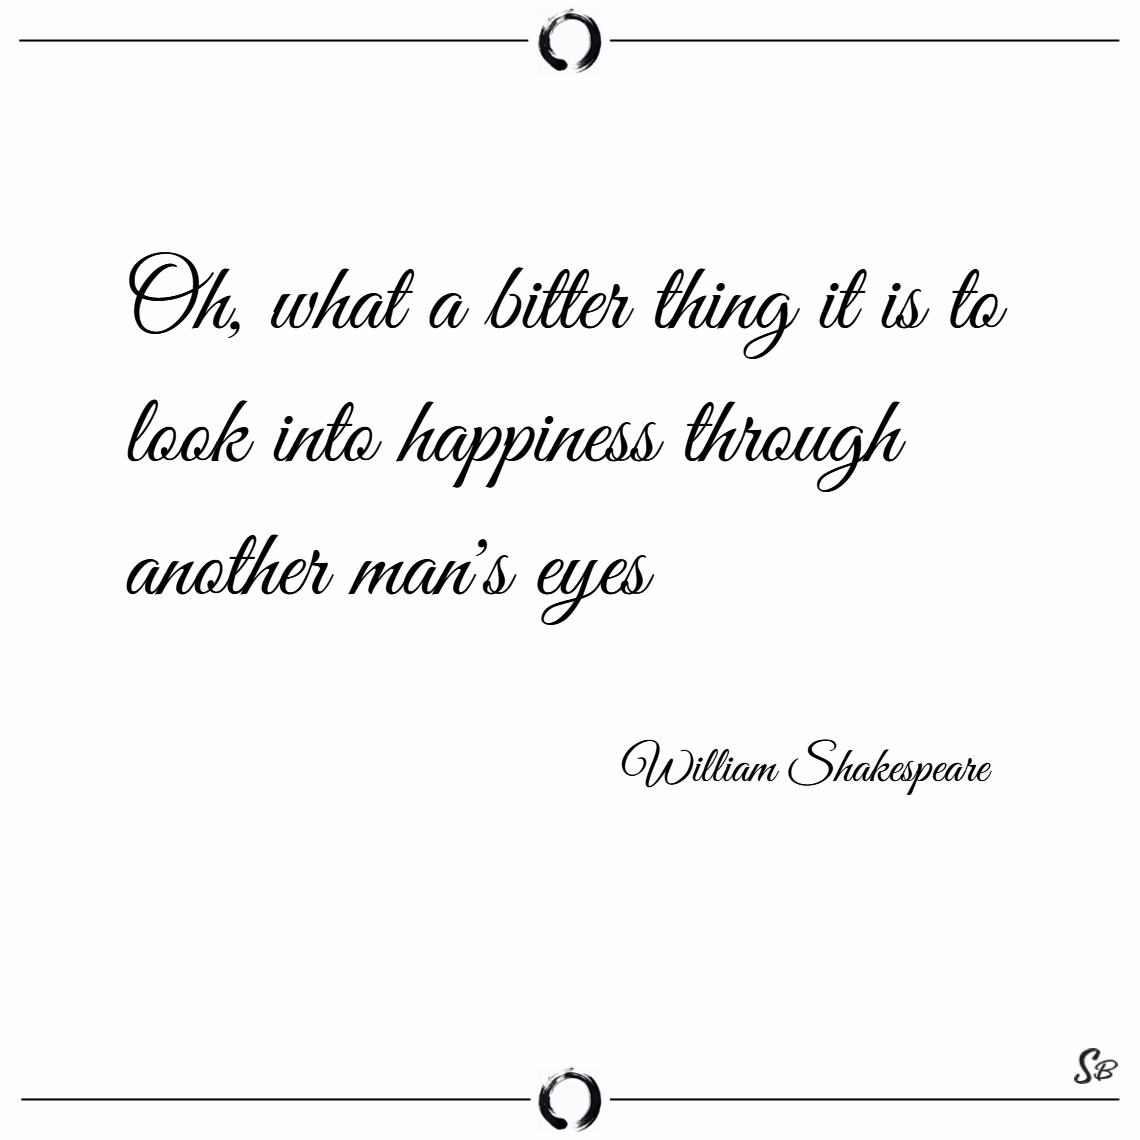 Oh, what a bitter thing it is to look into happiness through another man's eyes. – william shakespeare